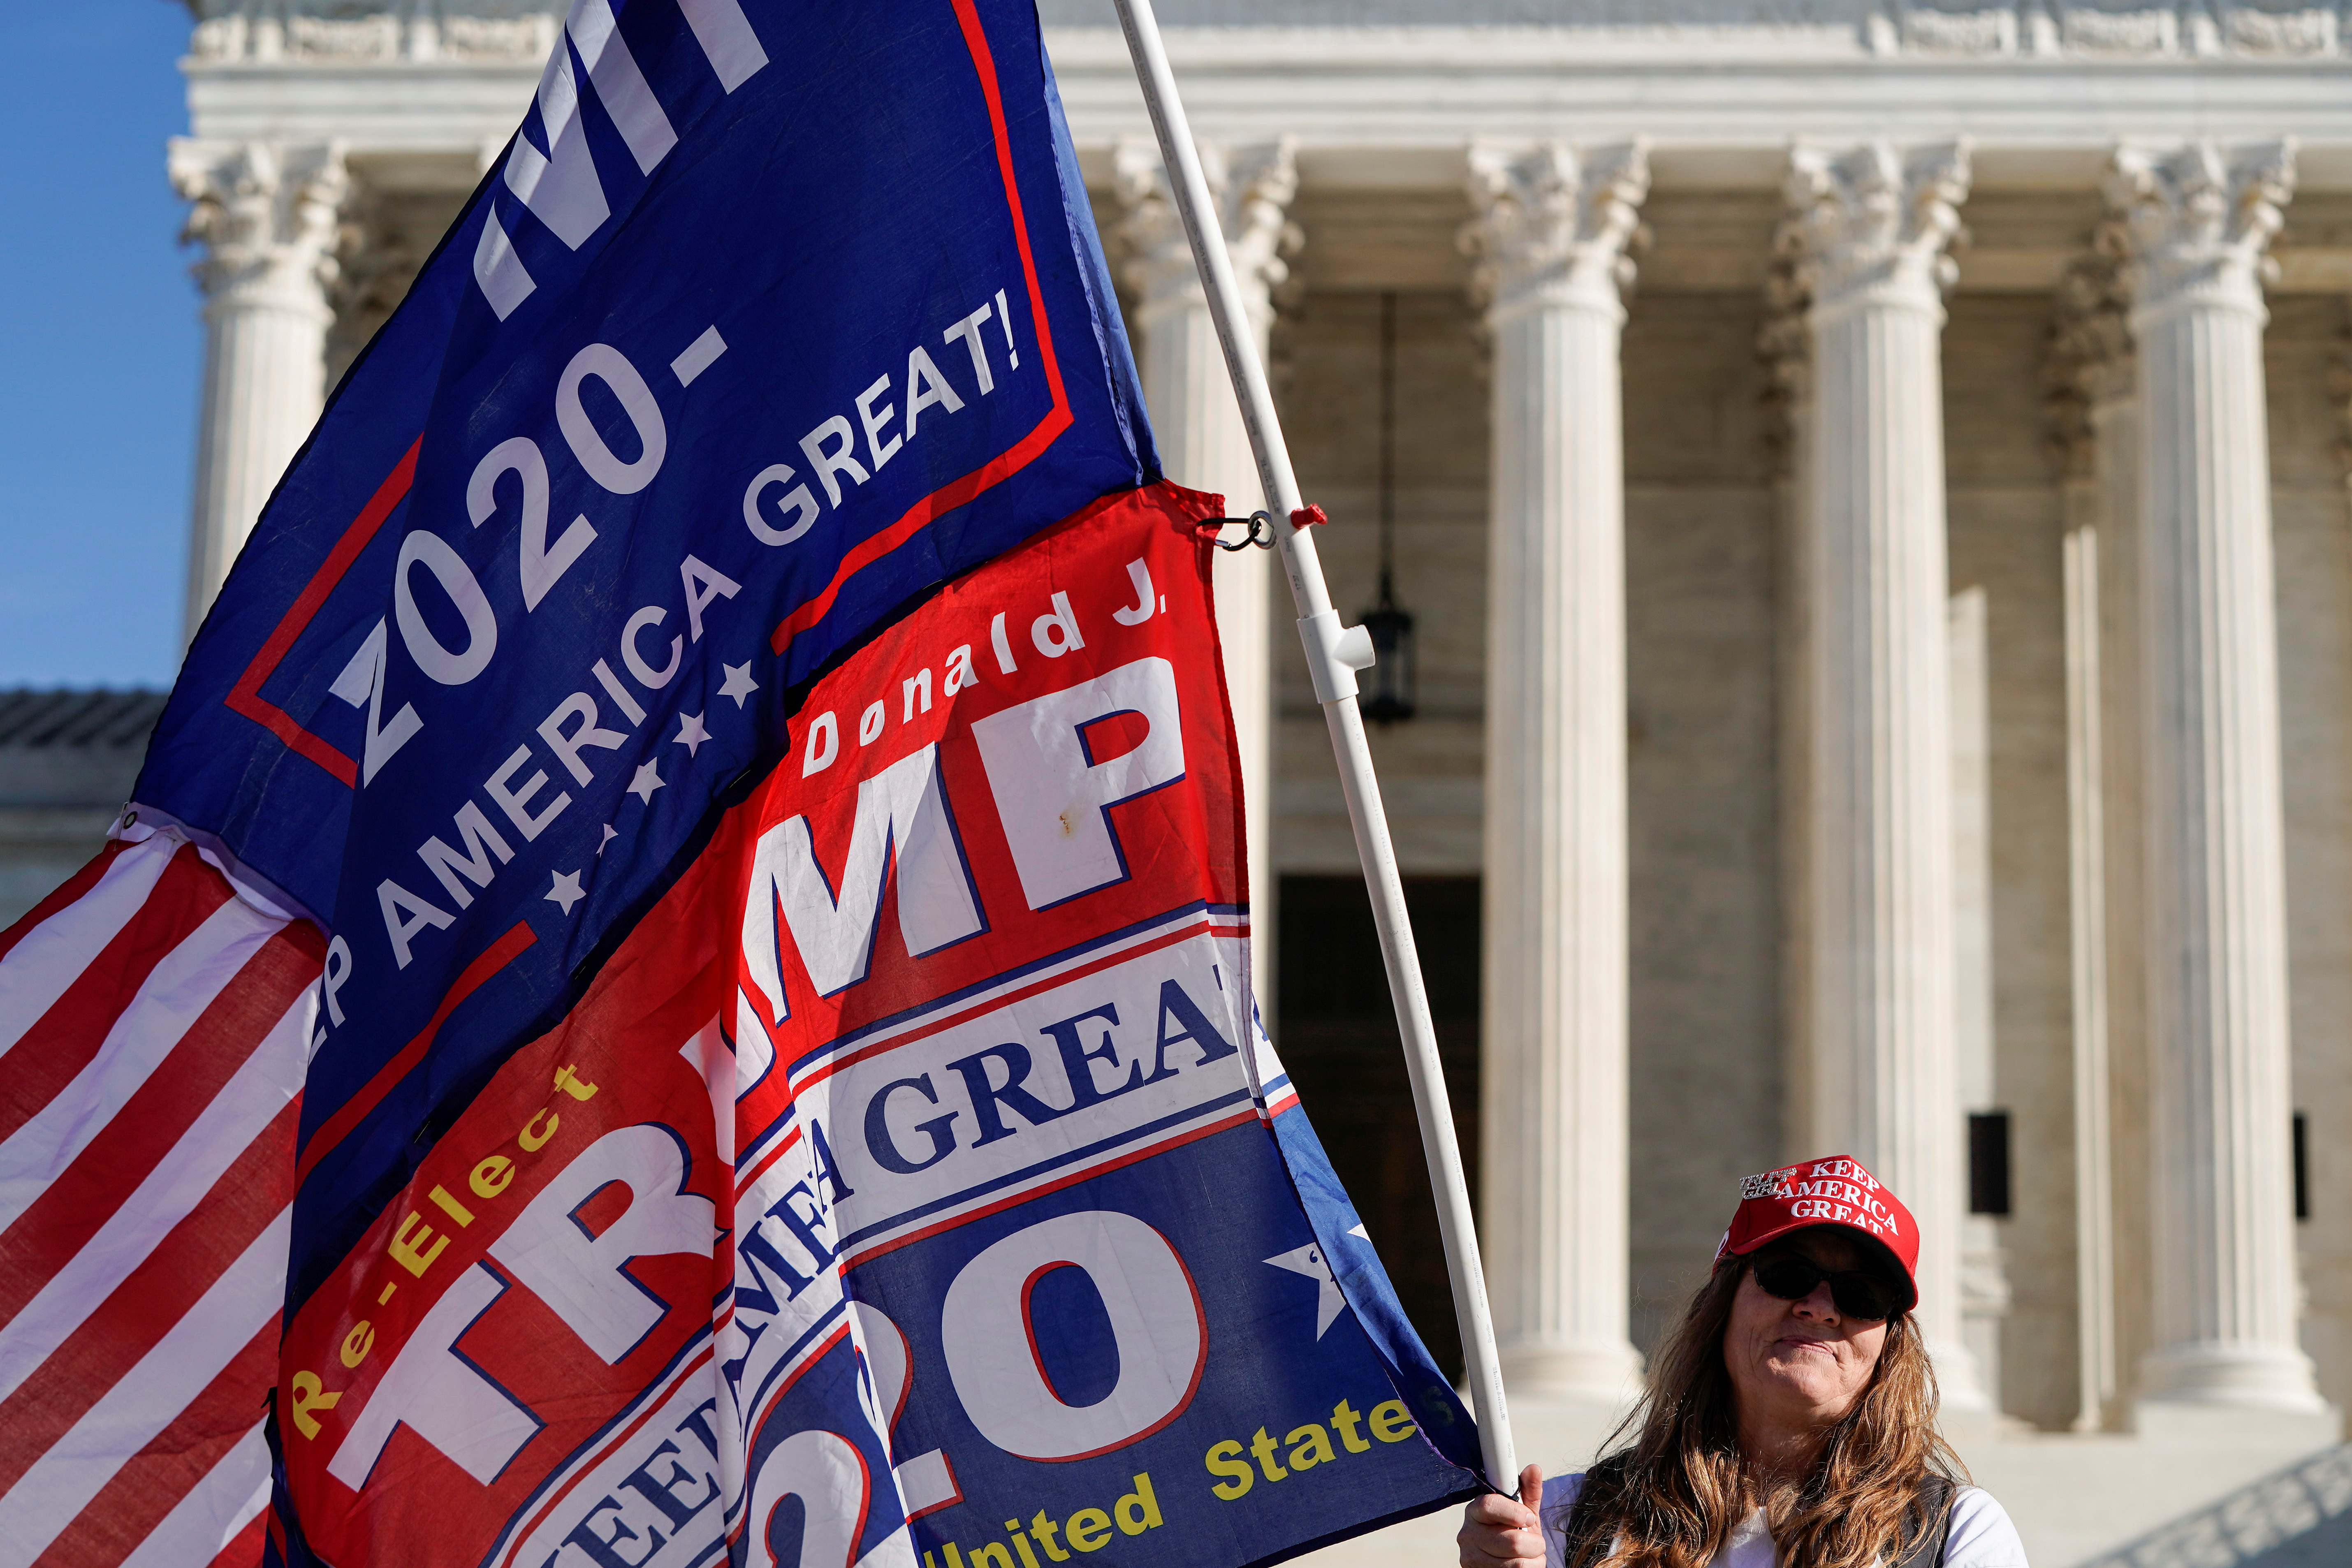 Kathleen Kratt, of Orlando, Florida, and a supporter of U.S. President Donald Trump holds a flag in front of the Supreme Court as the court reviews a lawsuit filed by Texas seeking to undo President-elect Joe Biden's election victory in Washington, U.S., December 11, 2020. REUTERS/Joshua Roberts